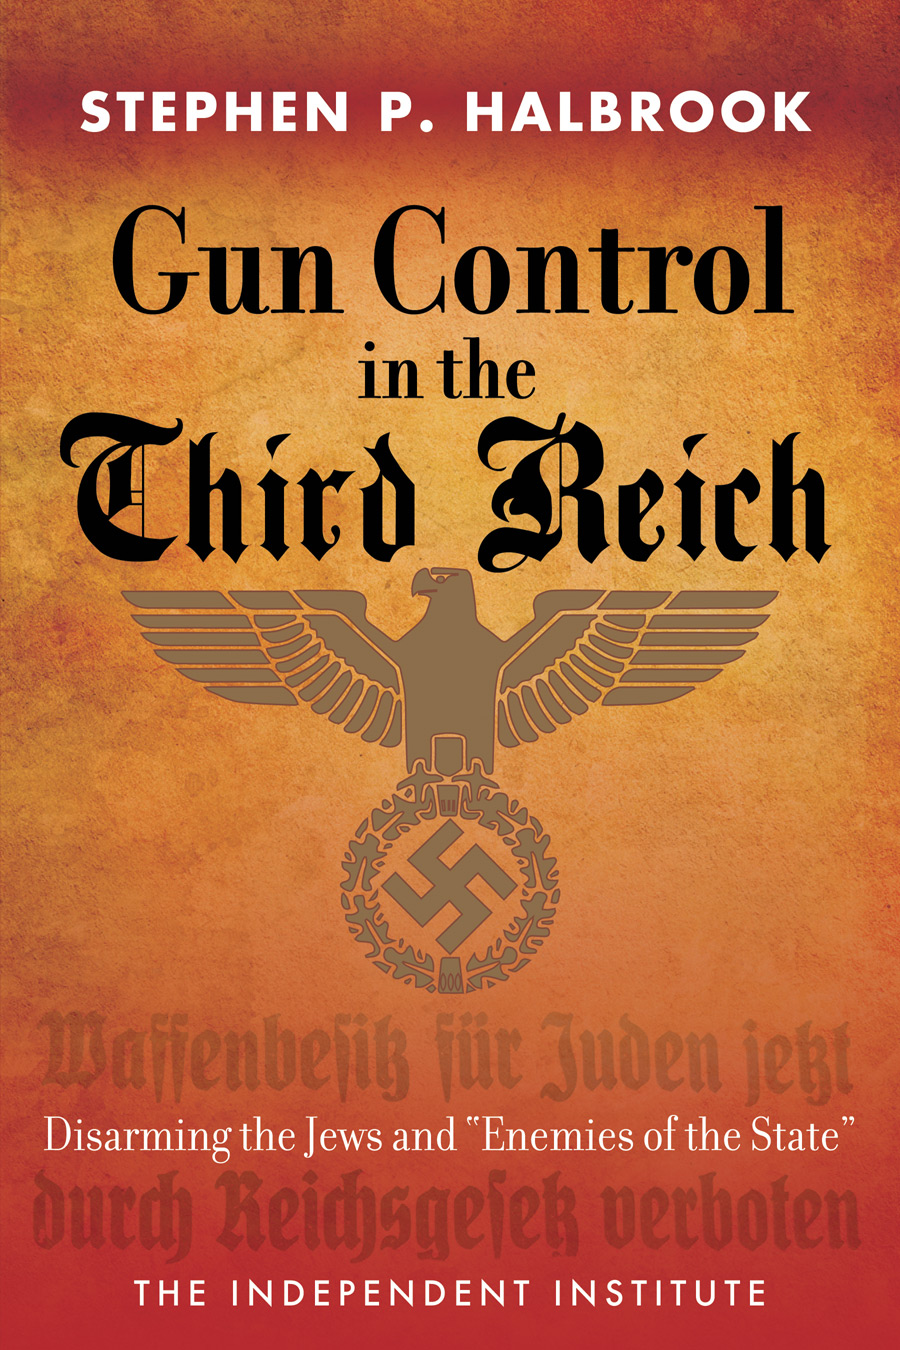 https://i2.wp.com/www.independent.org/images/books-hires/gun_control_third_900x1350.jpg